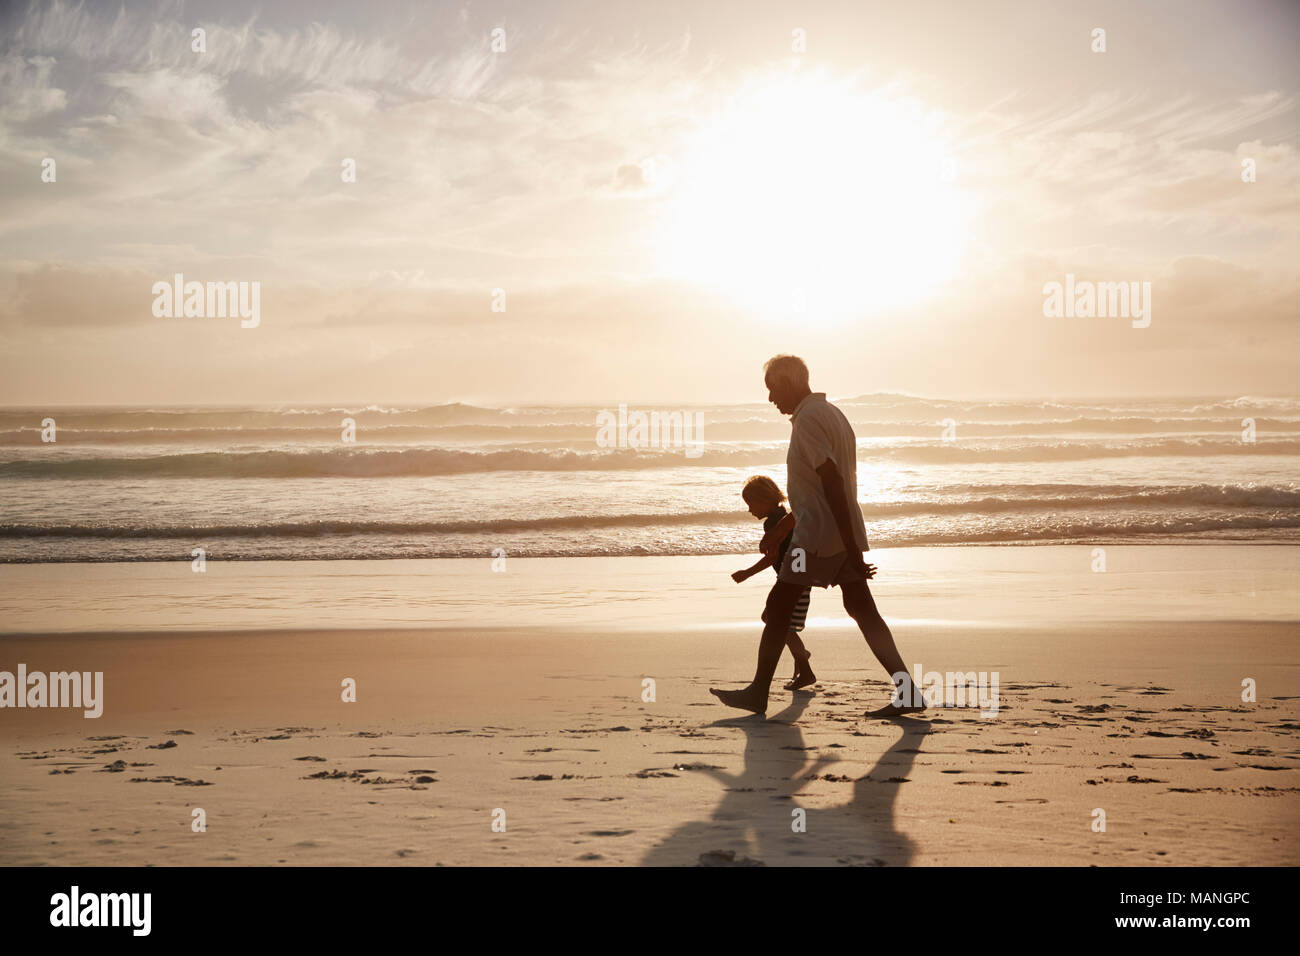 Silhouette Of Grandfather Walking Along Beach With Grandson - Stock Image